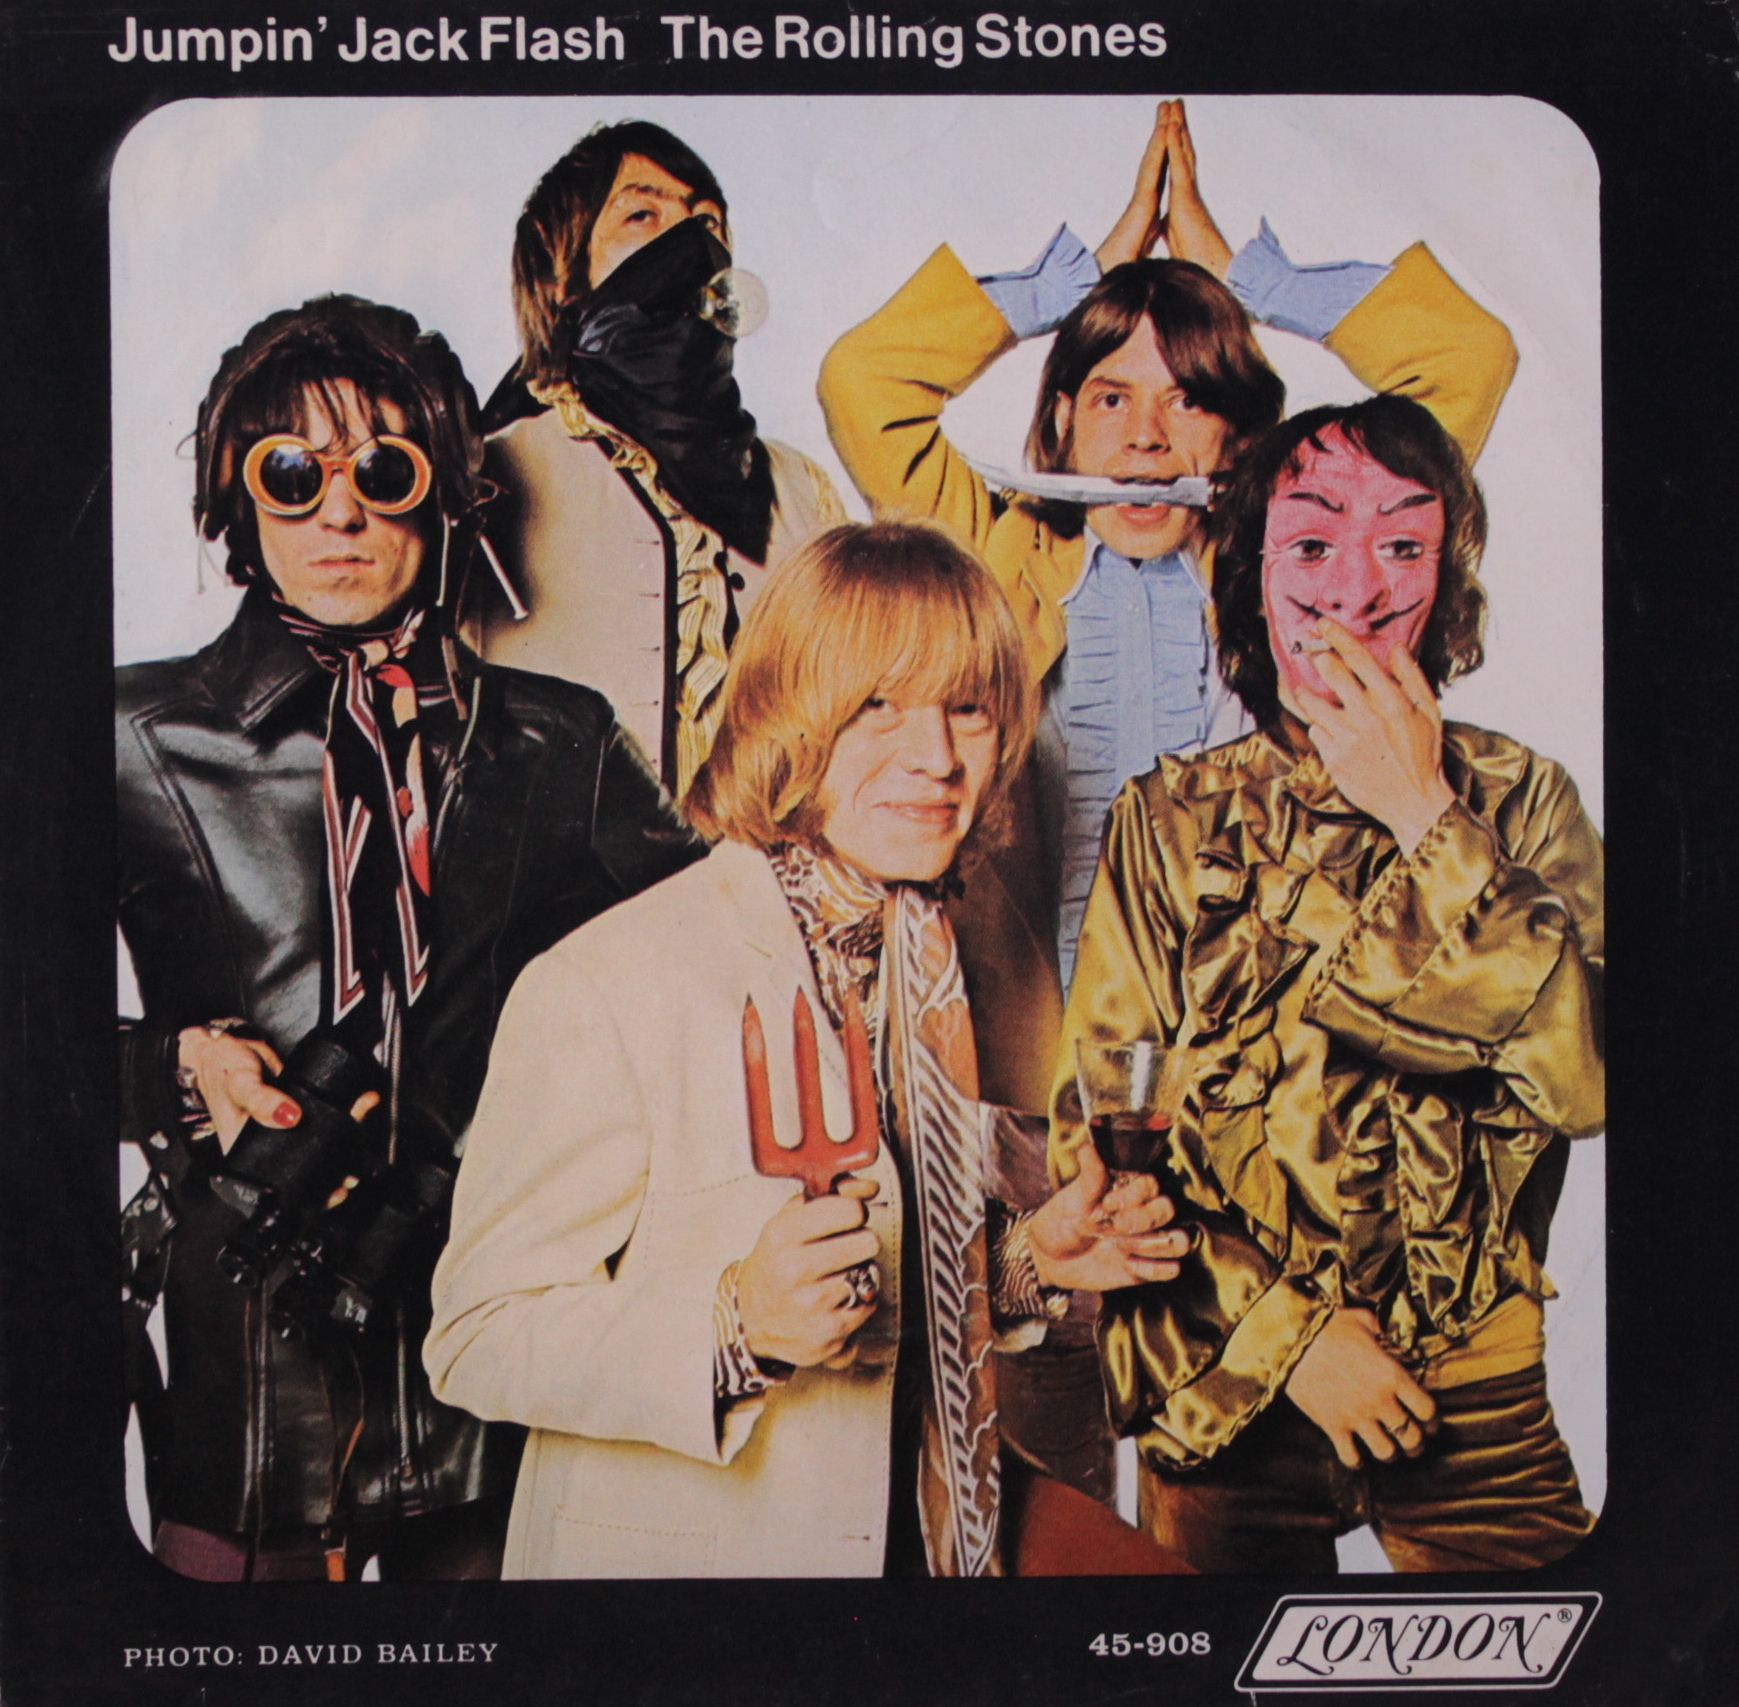 rolling-stones-jumpin-jack-flash-58651fb93df78ce2c365fca6.jpg